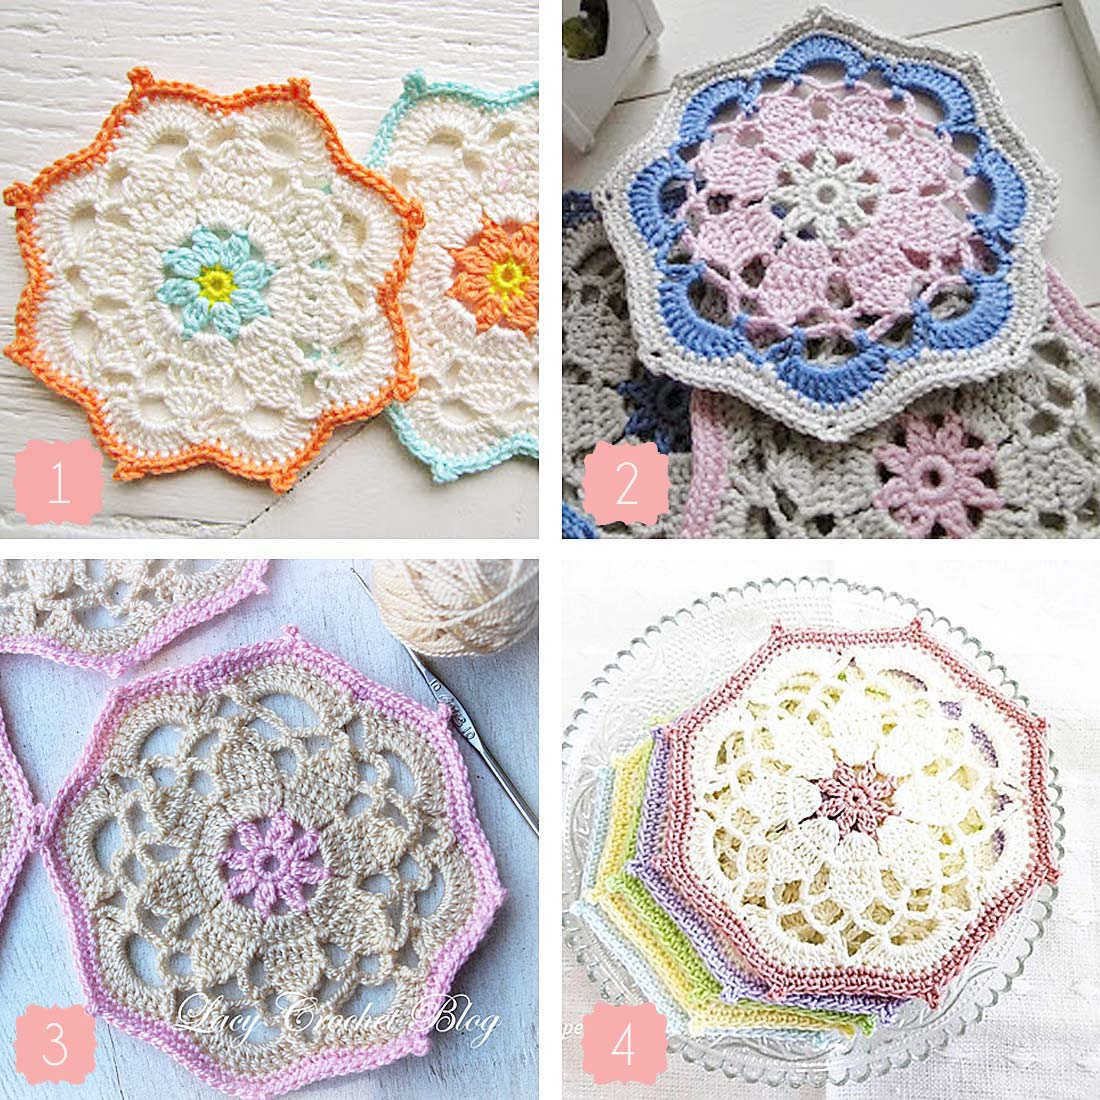 Anabelia craft design: Vintage crochet coasters: your finished projects